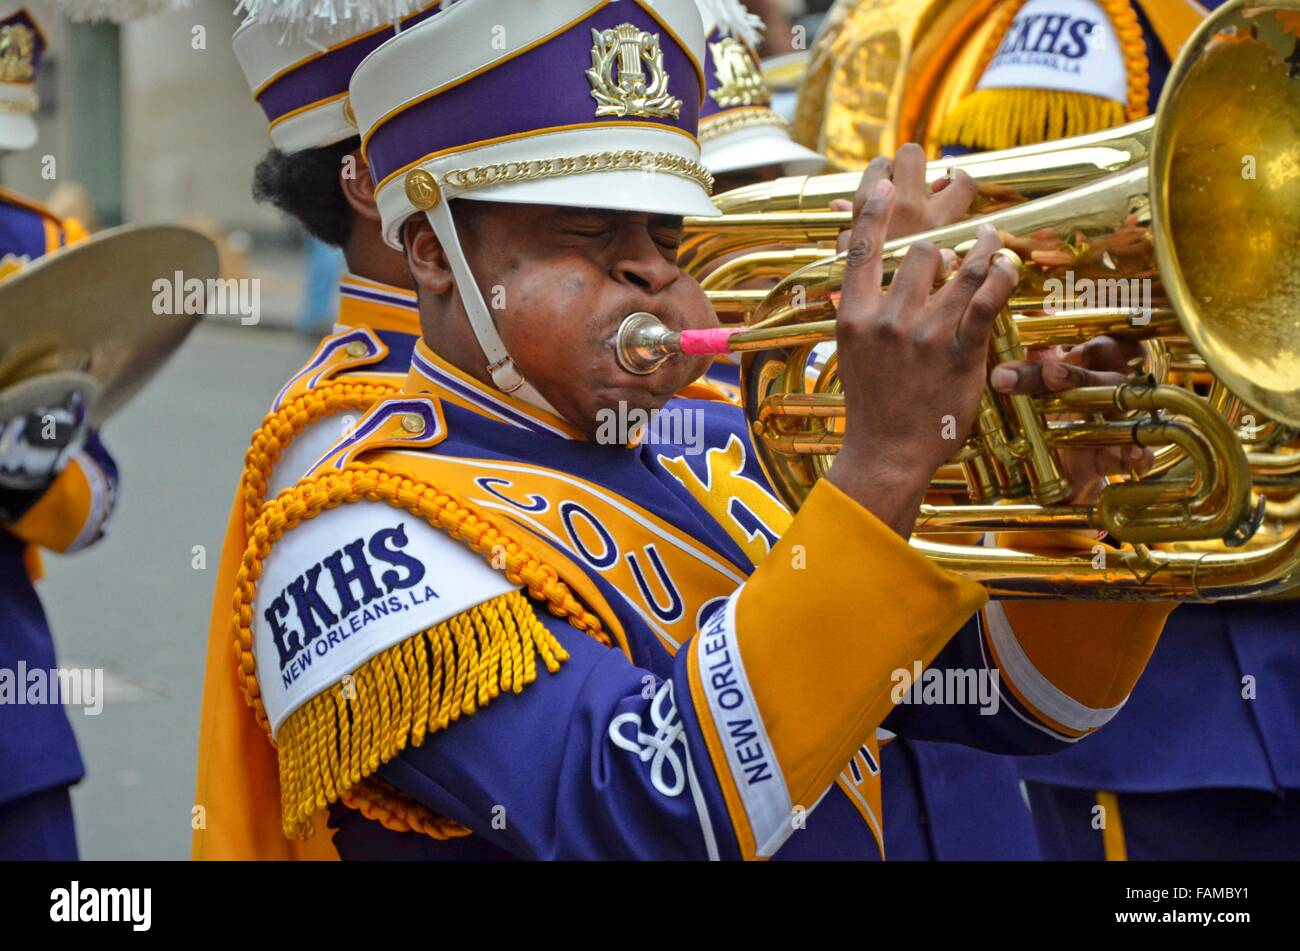 Edna Karr High School Marching Band in Krewe of NOMTOC ... |Edna Karr High School Band